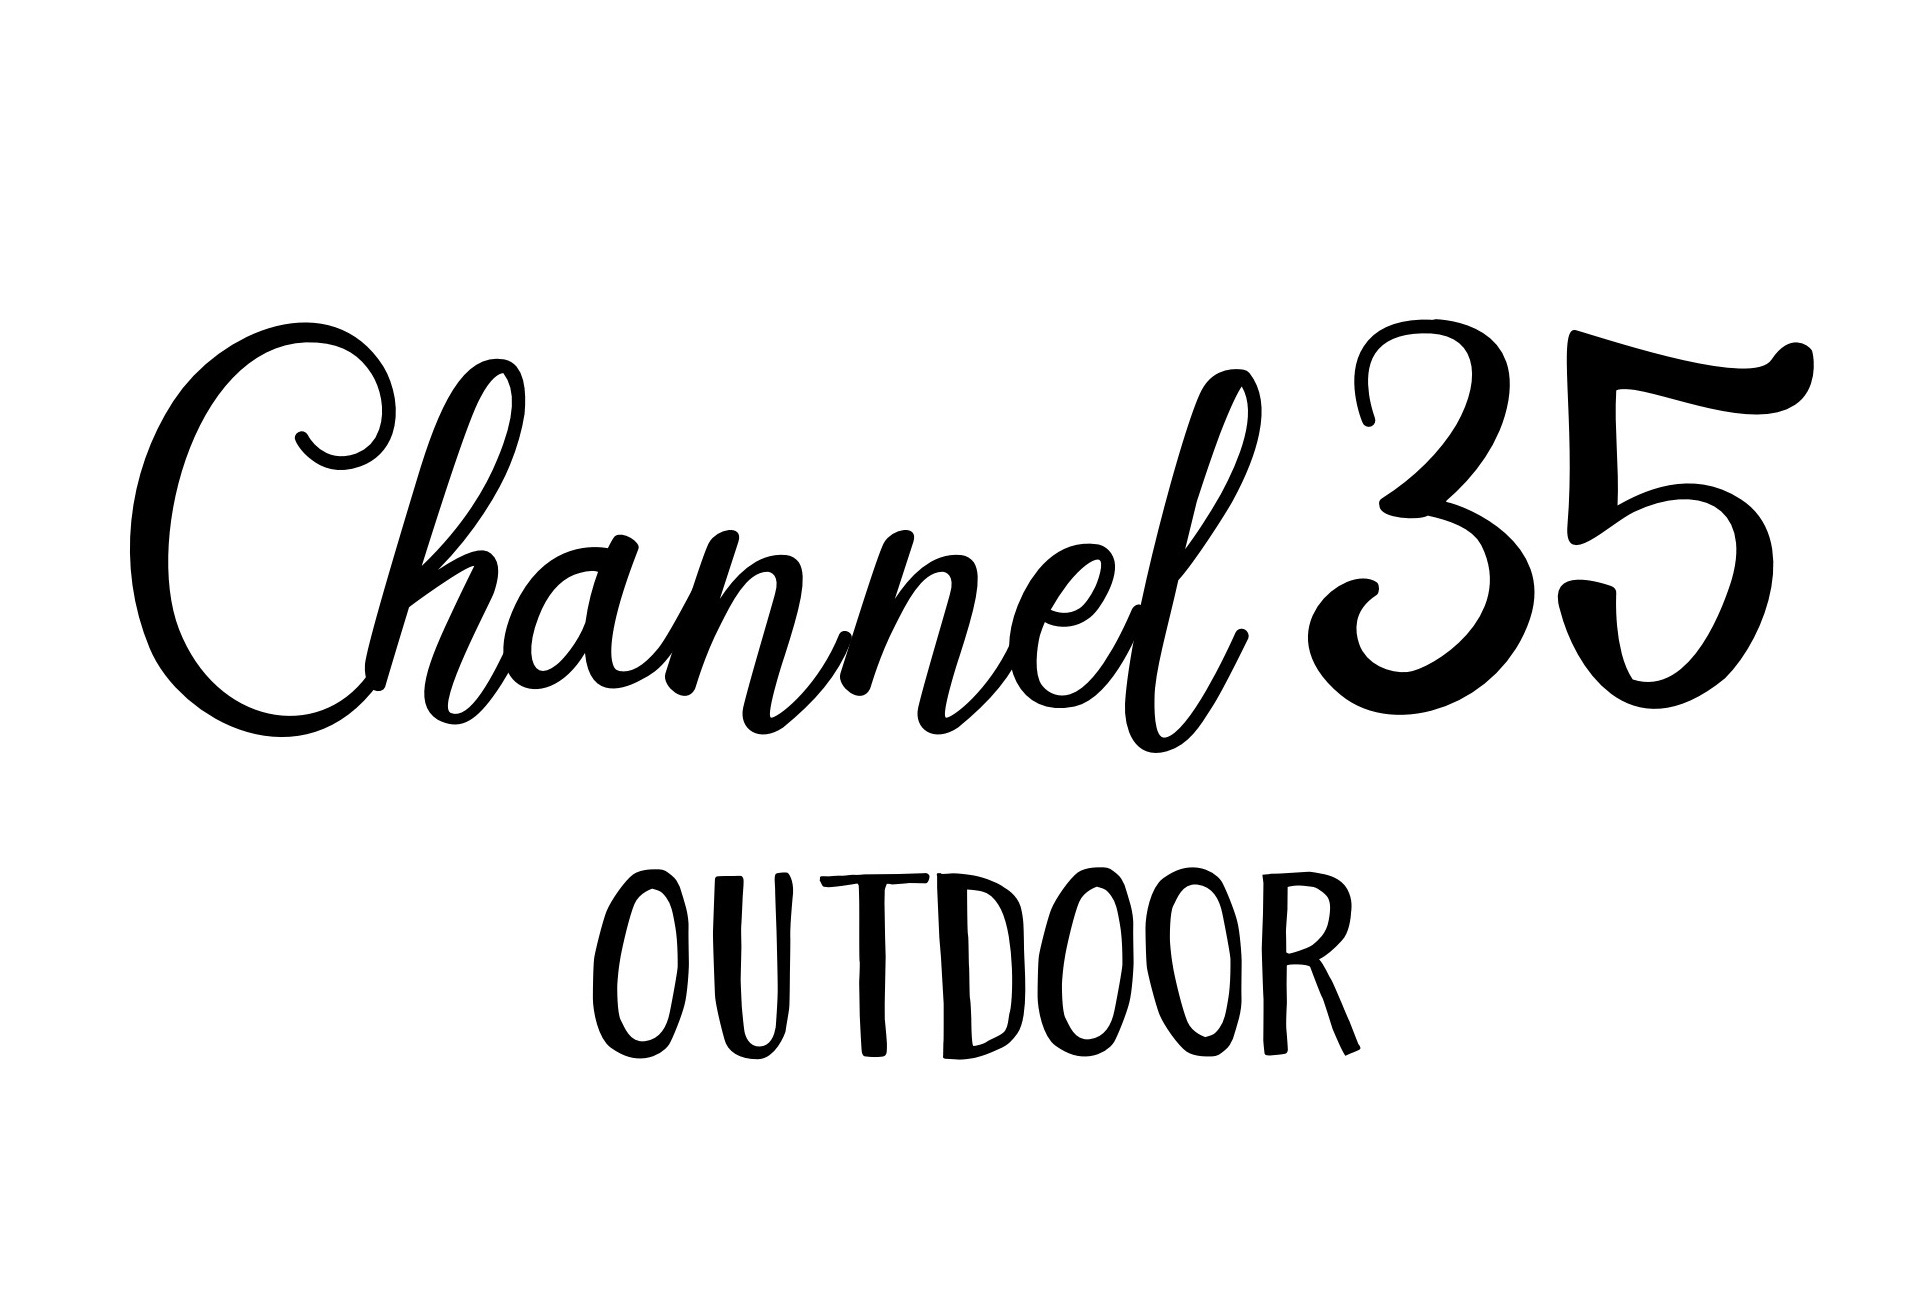 channel35